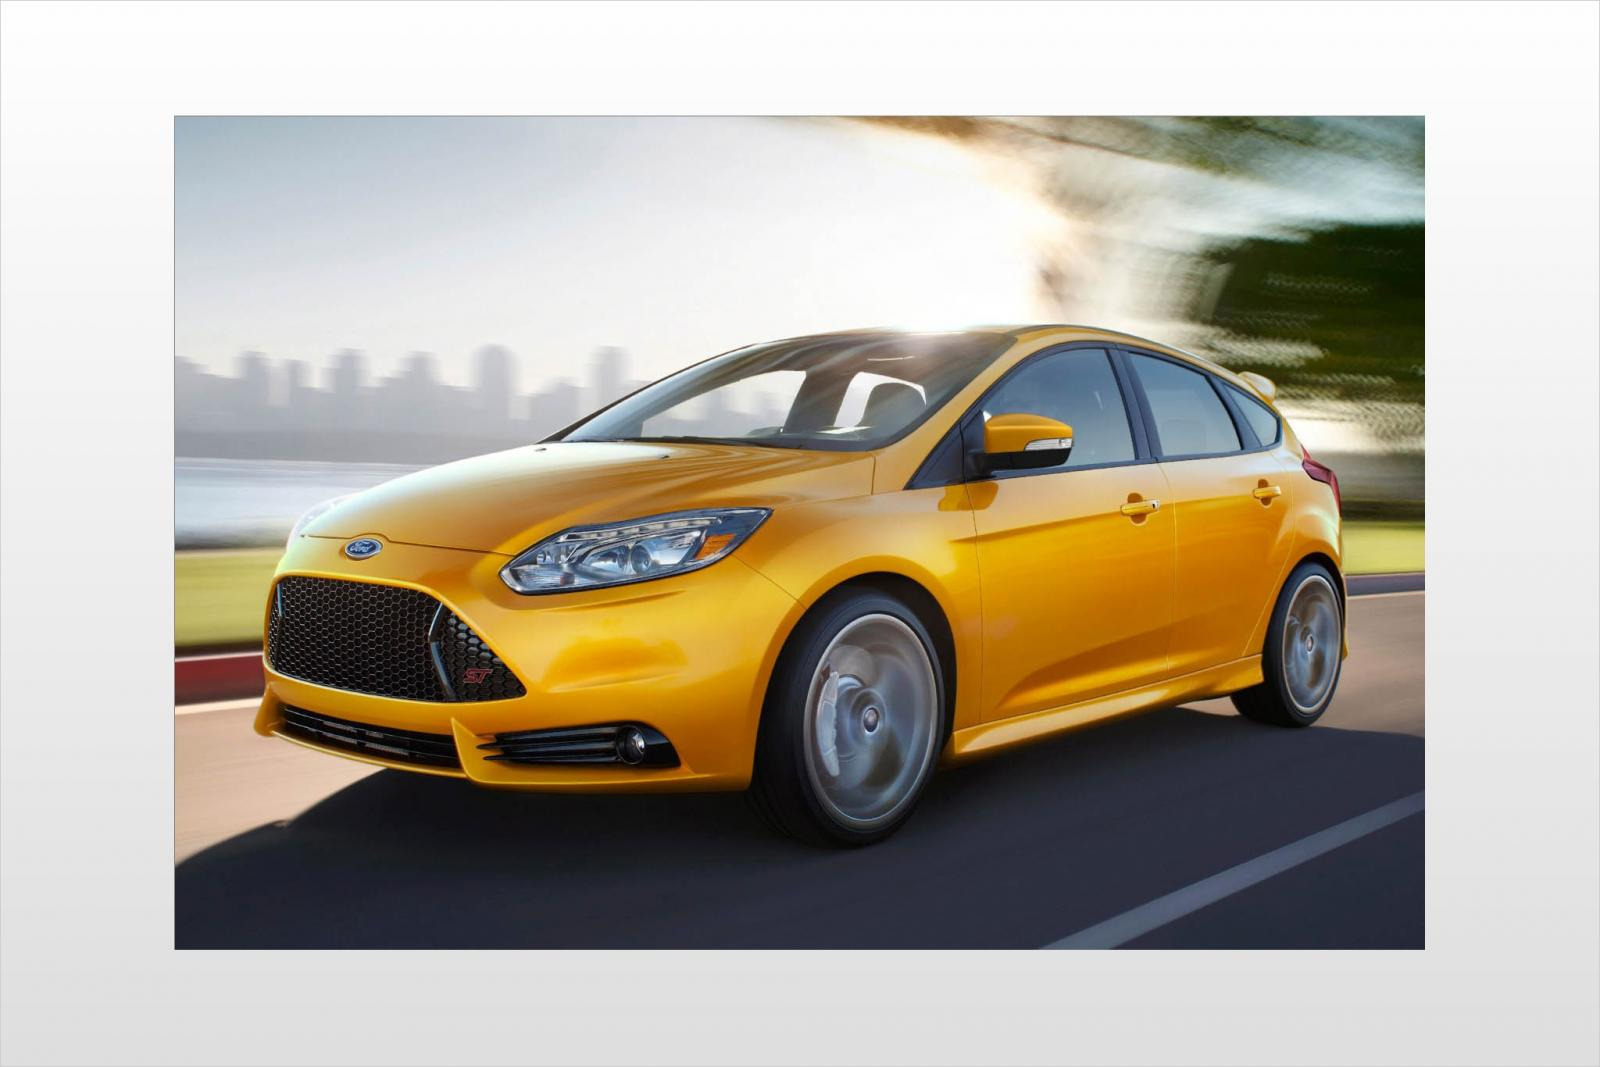 2014 ford focus st information and photos zombiedrive. Black Bedroom Furniture Sets. Home Design Ideas